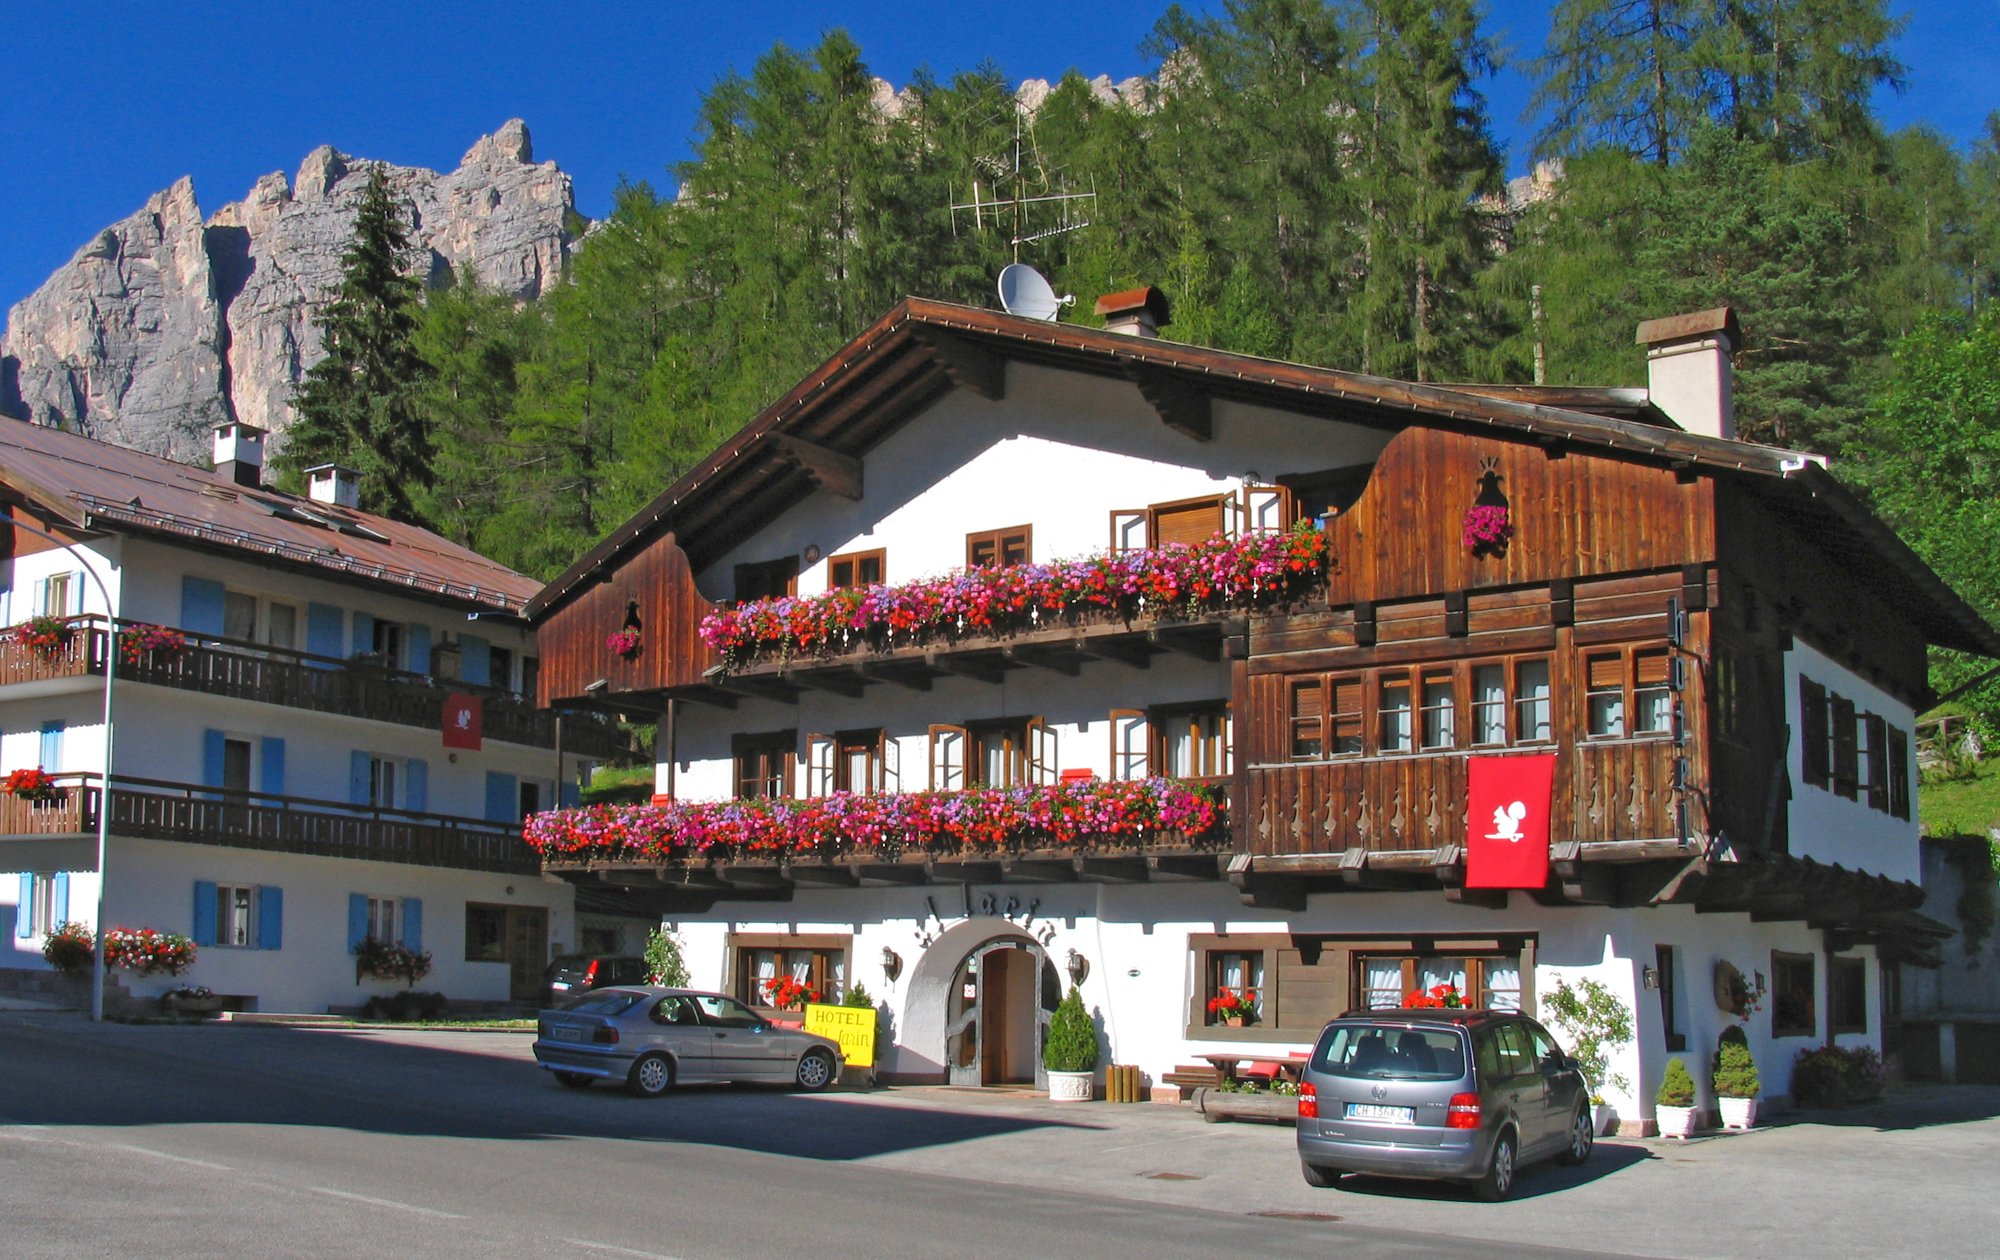 Hotel al larin updated 2017 reviews price comparison for Hotel meuble royal cortina d ampezzo